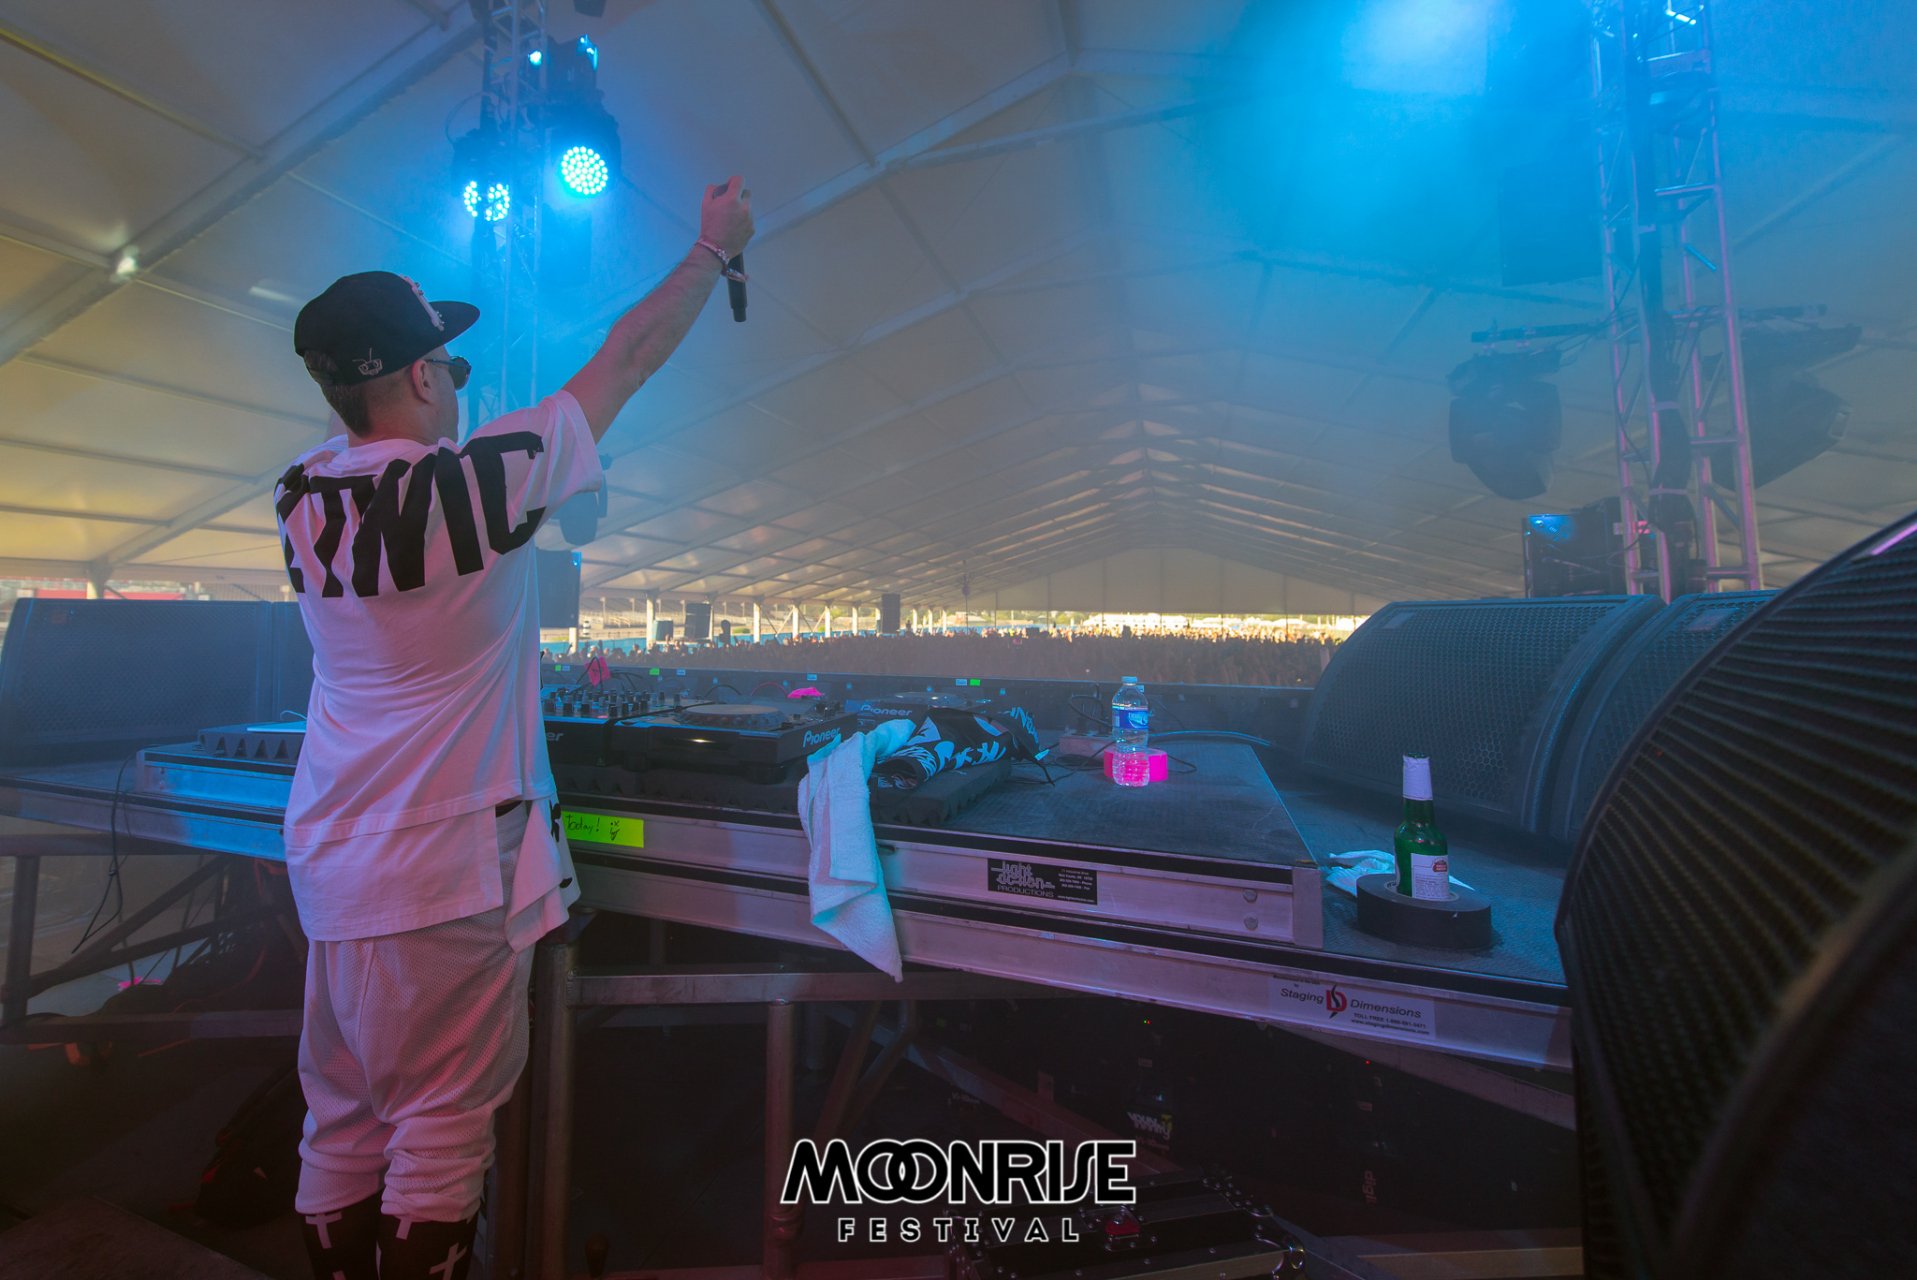 Moonrise_day2-56